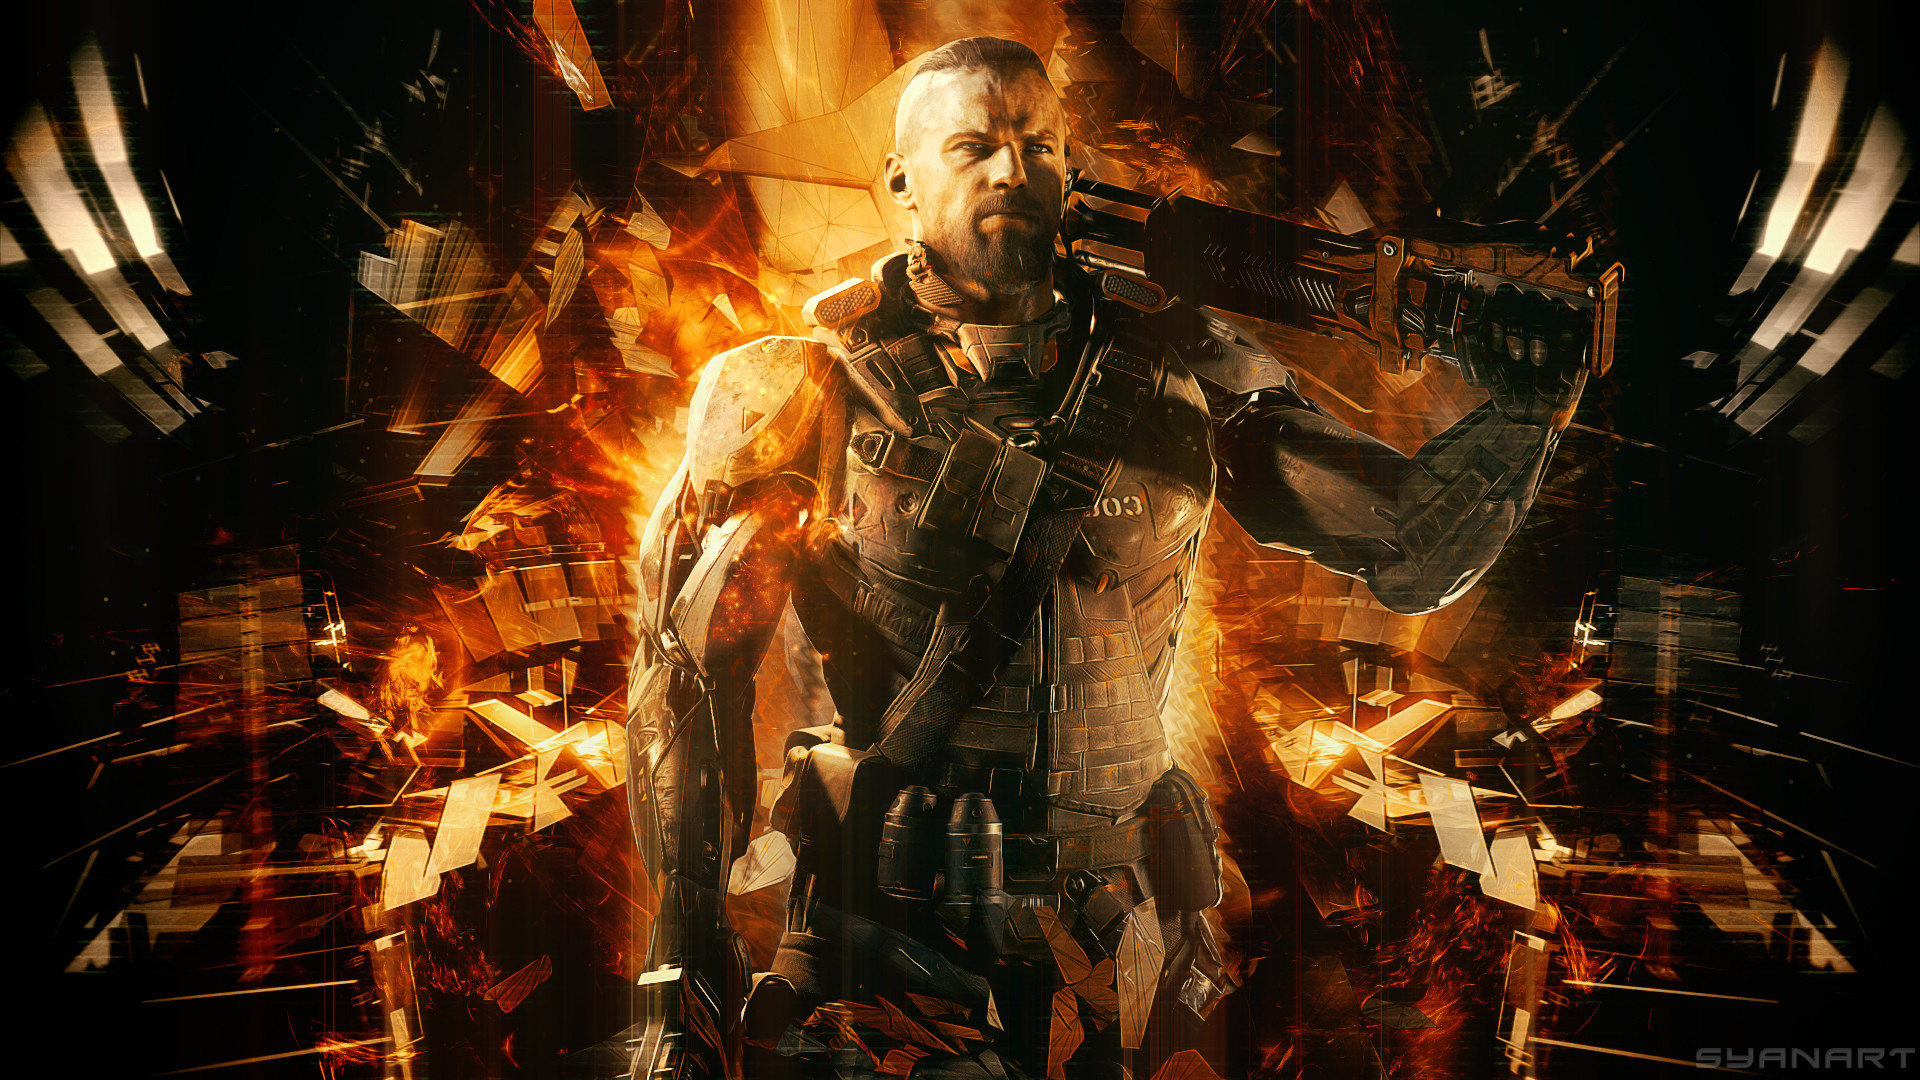 Call Of Duty Black Ops 3 Hd Wallpapers: Call Of Duty 3 Wallpapers (84+ Images